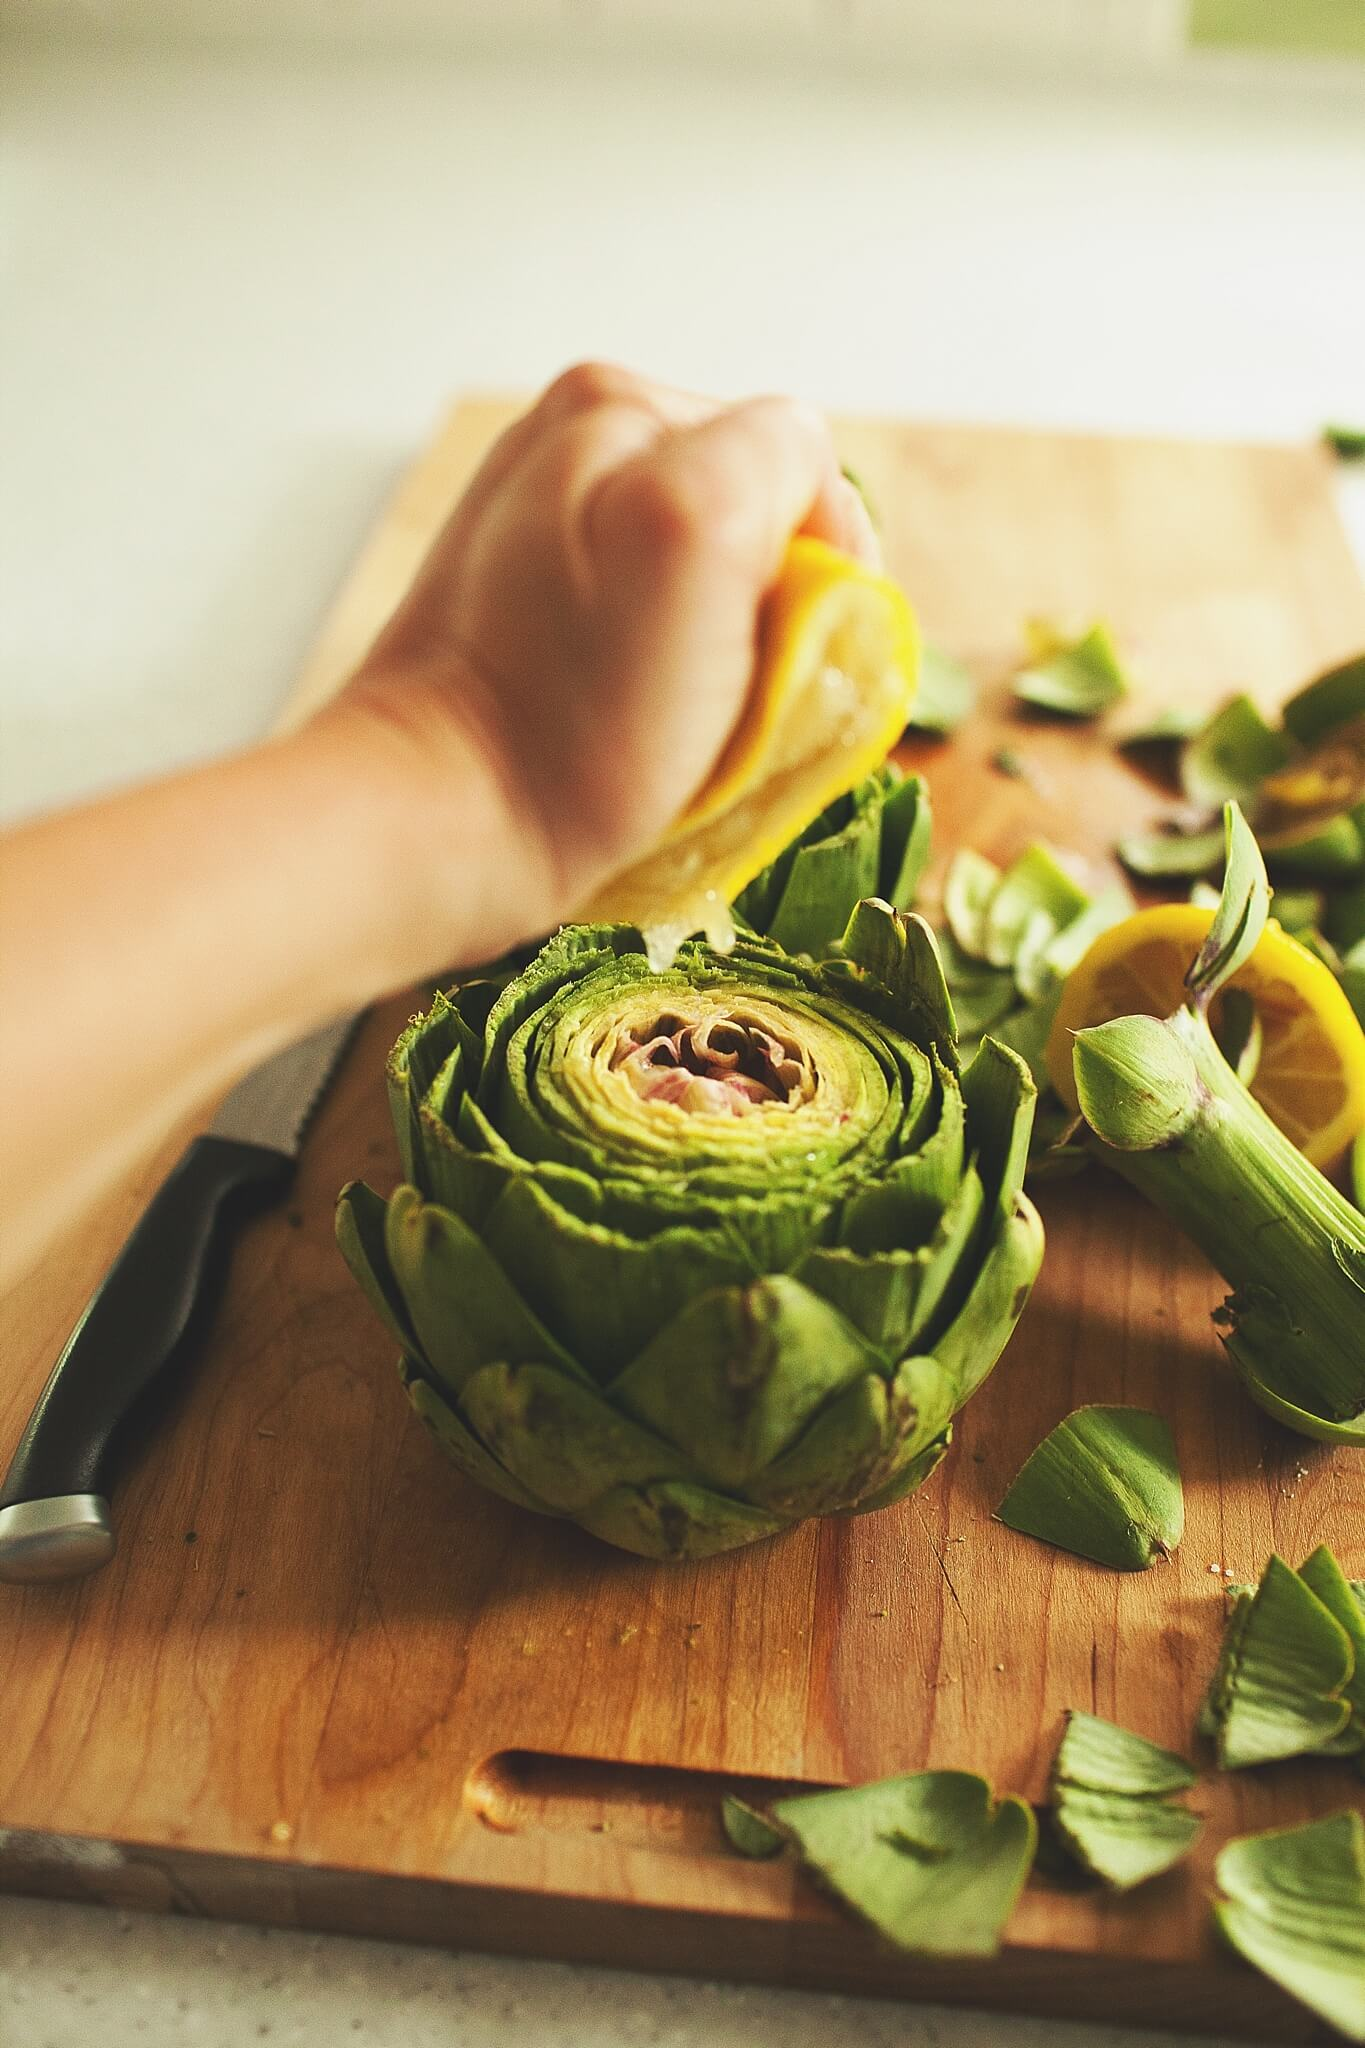 How to Cook Crockpot Artichokes - Step 6: squeeze lemon over artichokes